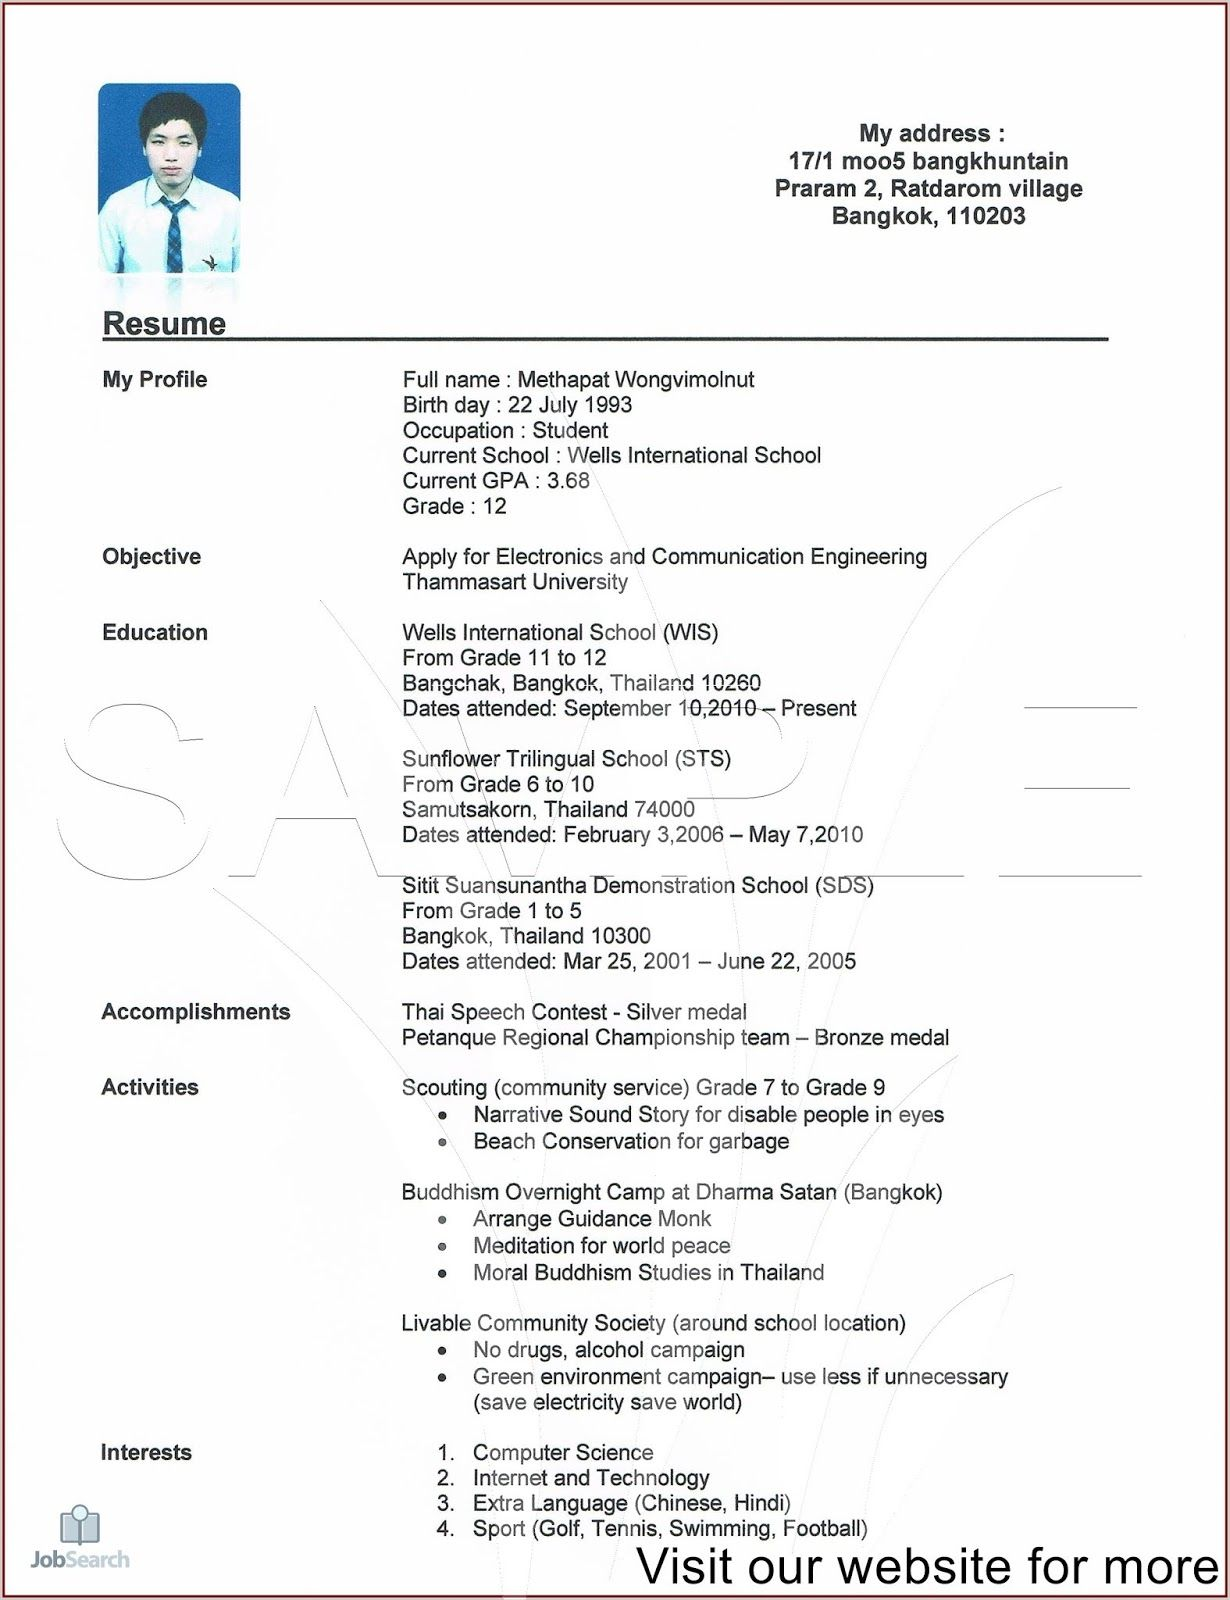 resume template professional cv design free student high school college create and save Resume Create A Resume Online Free And Save